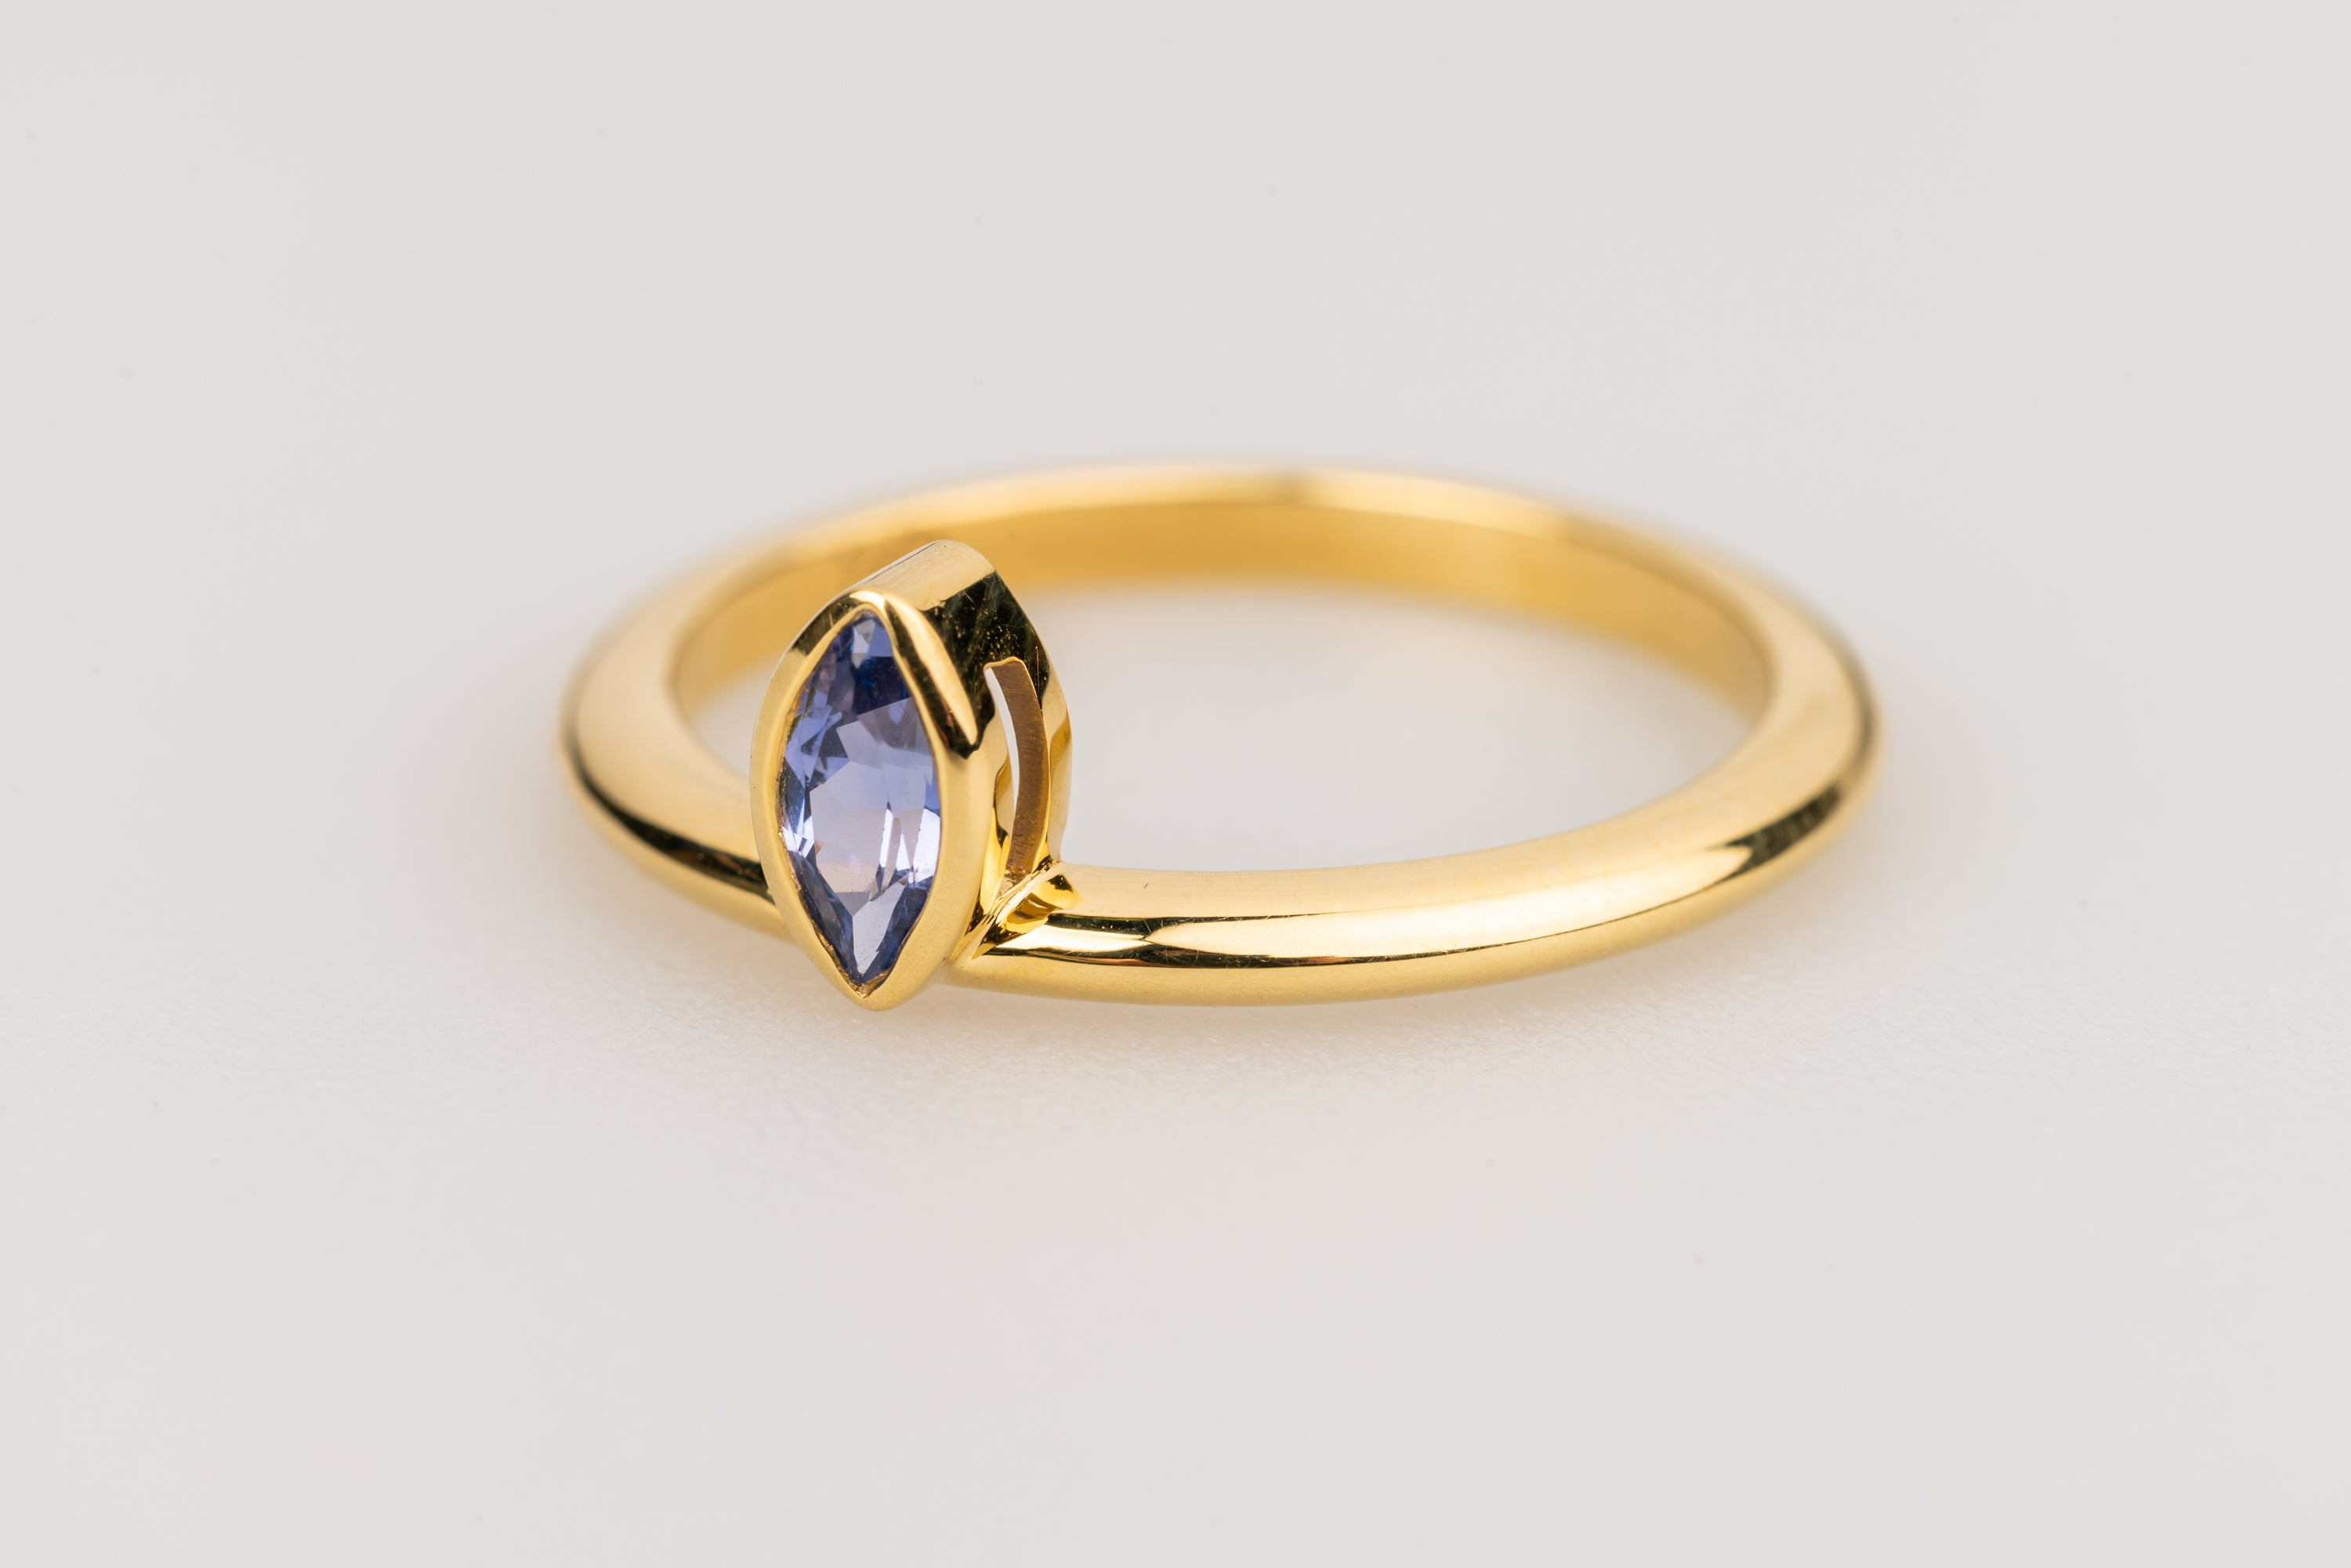 Marquise Shaped Blue Sapphire Ring in 18k Yellow Gold